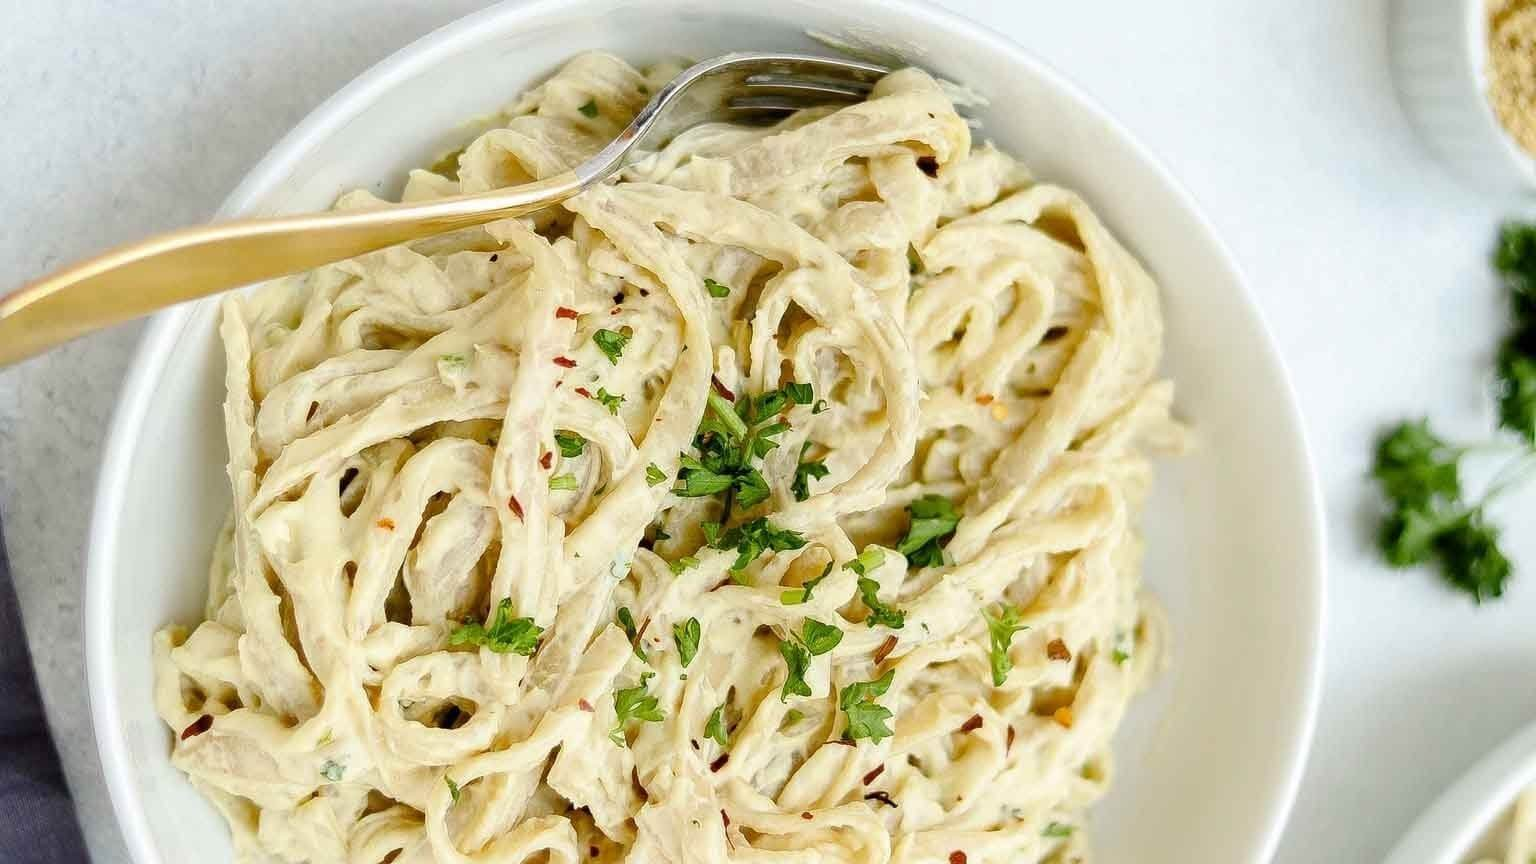 Cauliflower Makes This Vegan Fettuccine Alfredo Extra Creamy